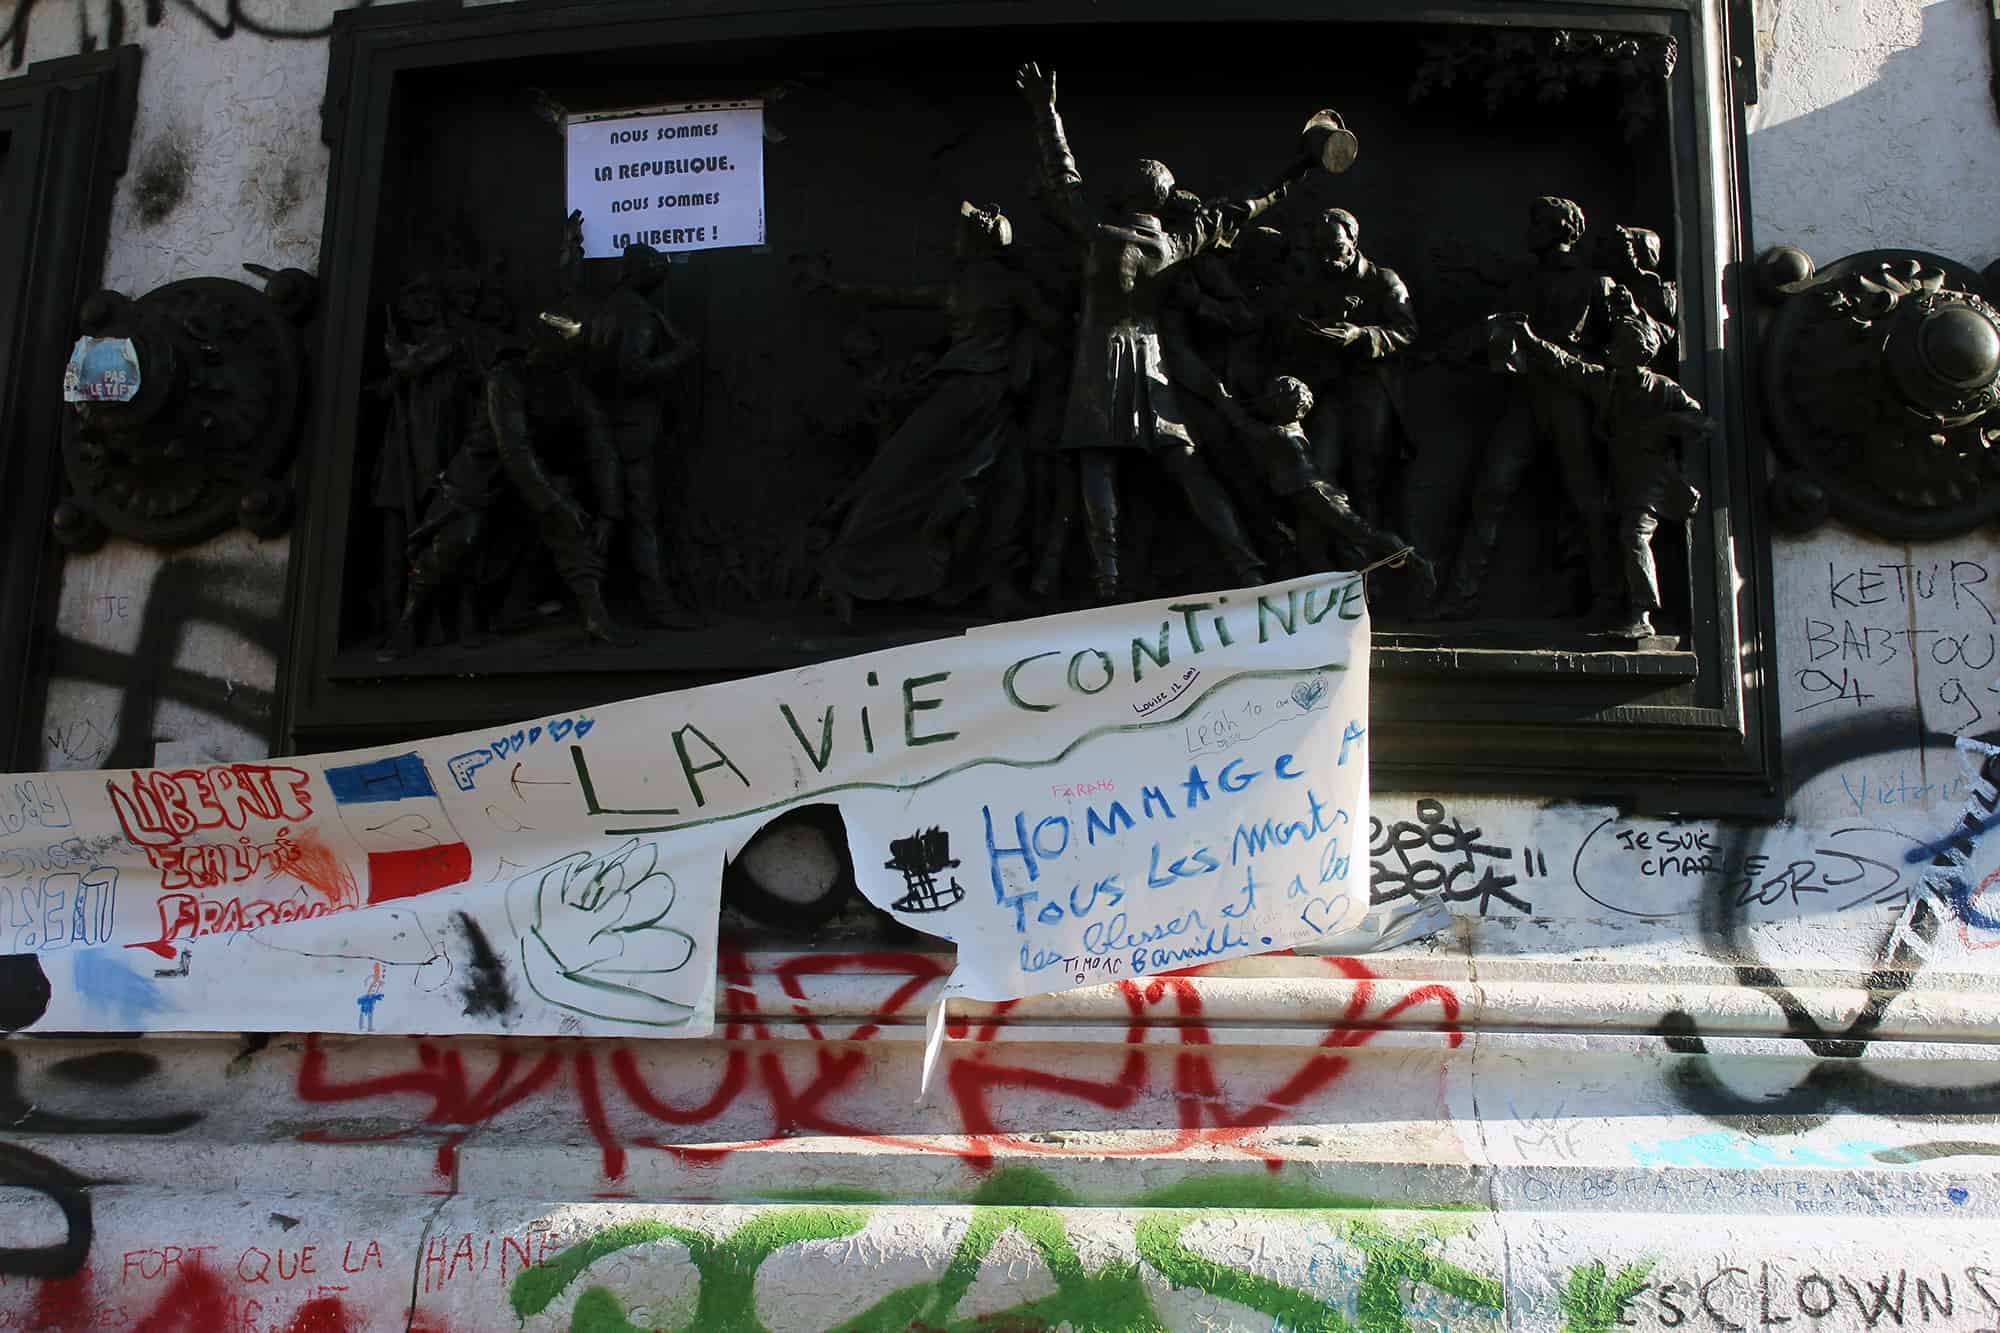 """Life goes on"" reads a sign hung on the monument at the Place de la Republique in Paris"